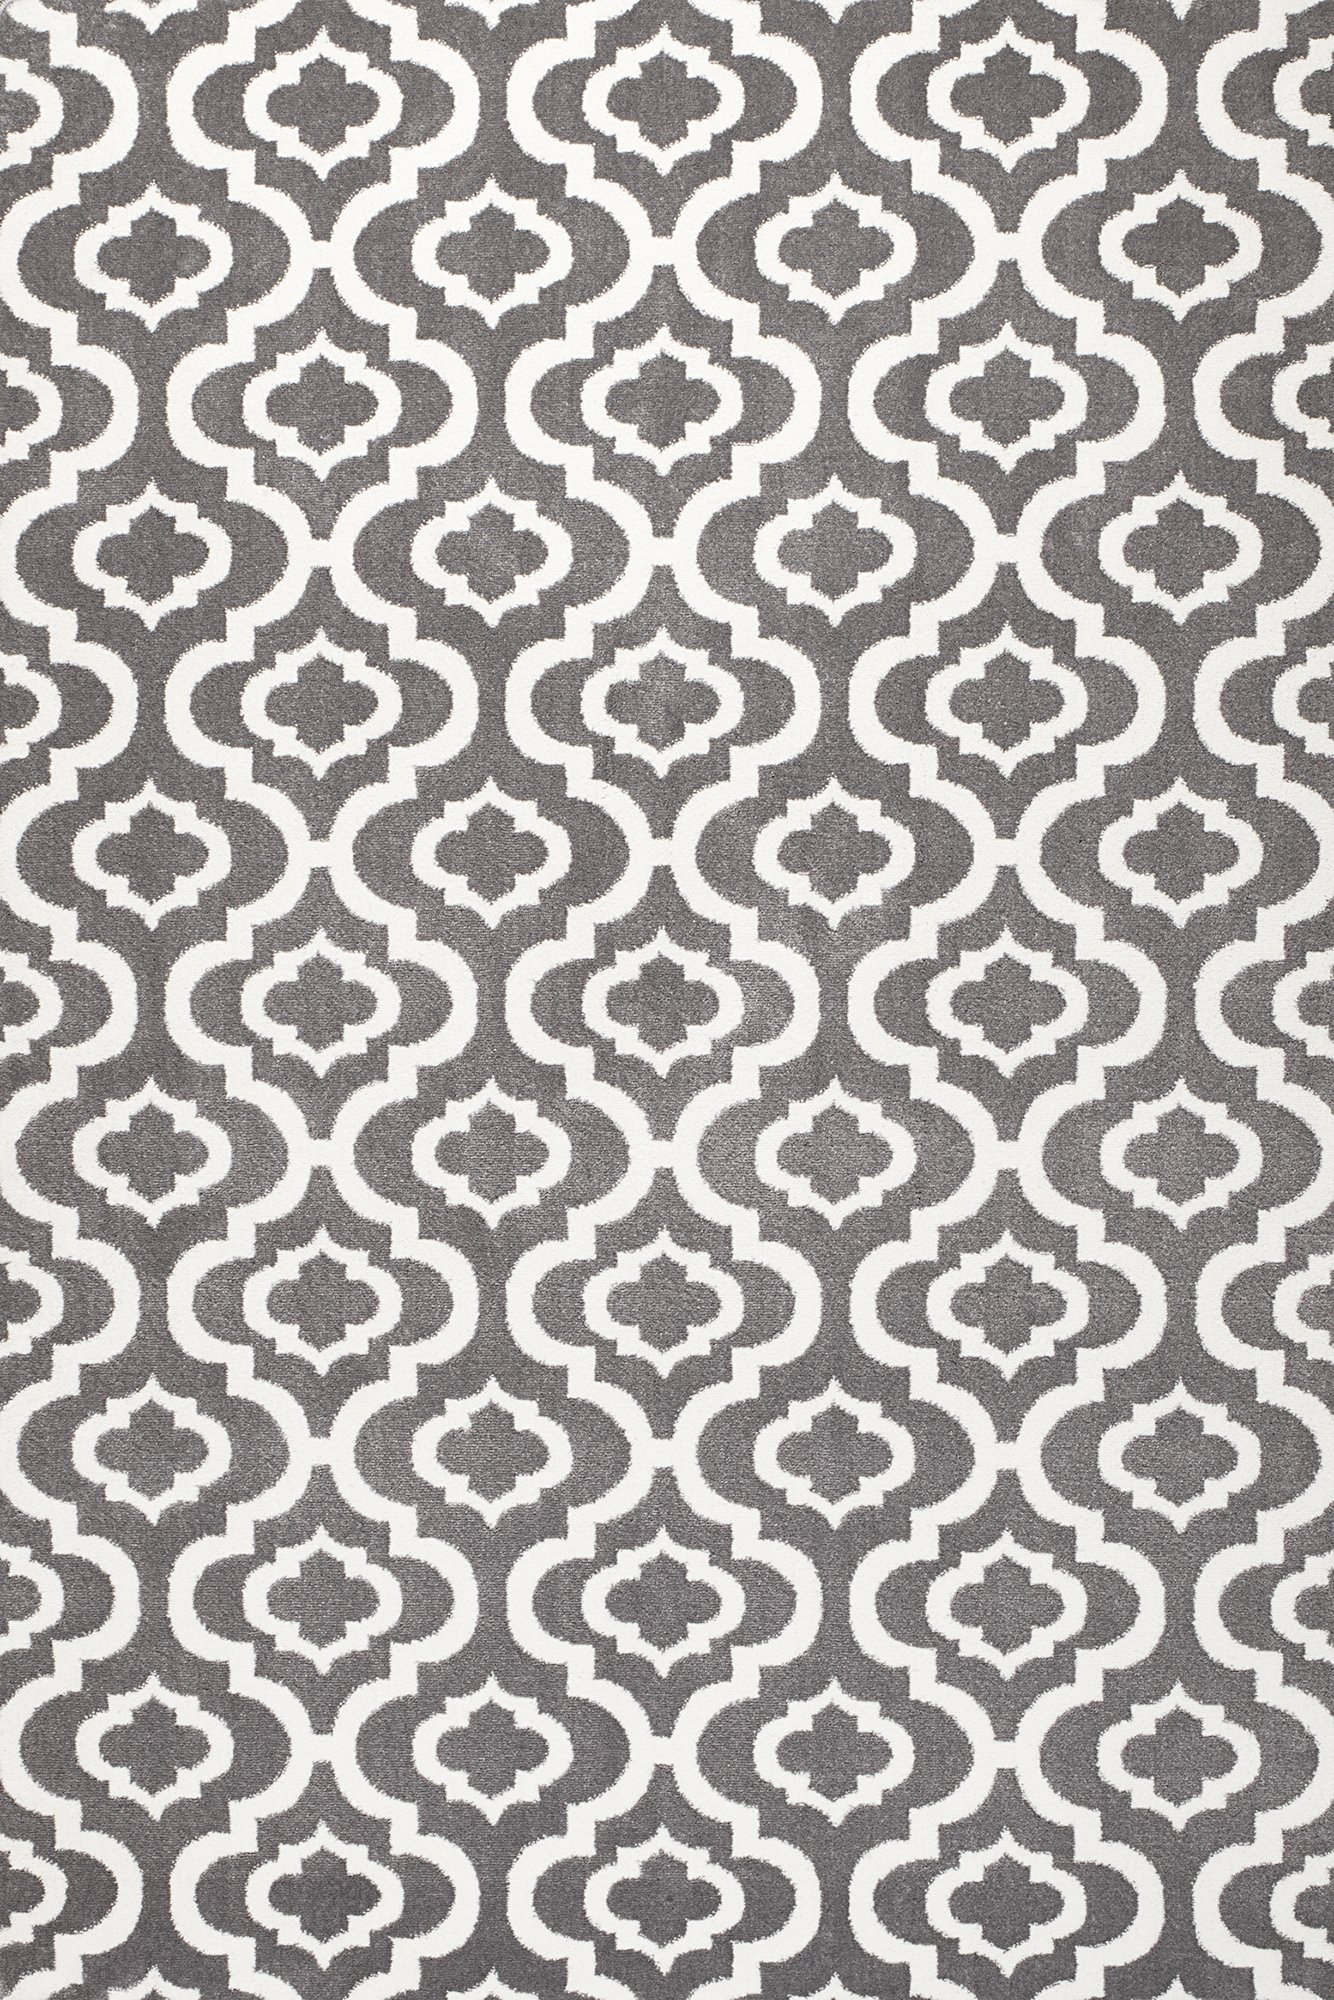 Summit S27 New Moroccan Gray Trellis Rug Modern Abstract Rug (22 Inch X 35 Inch Scatter Door MAT Size)